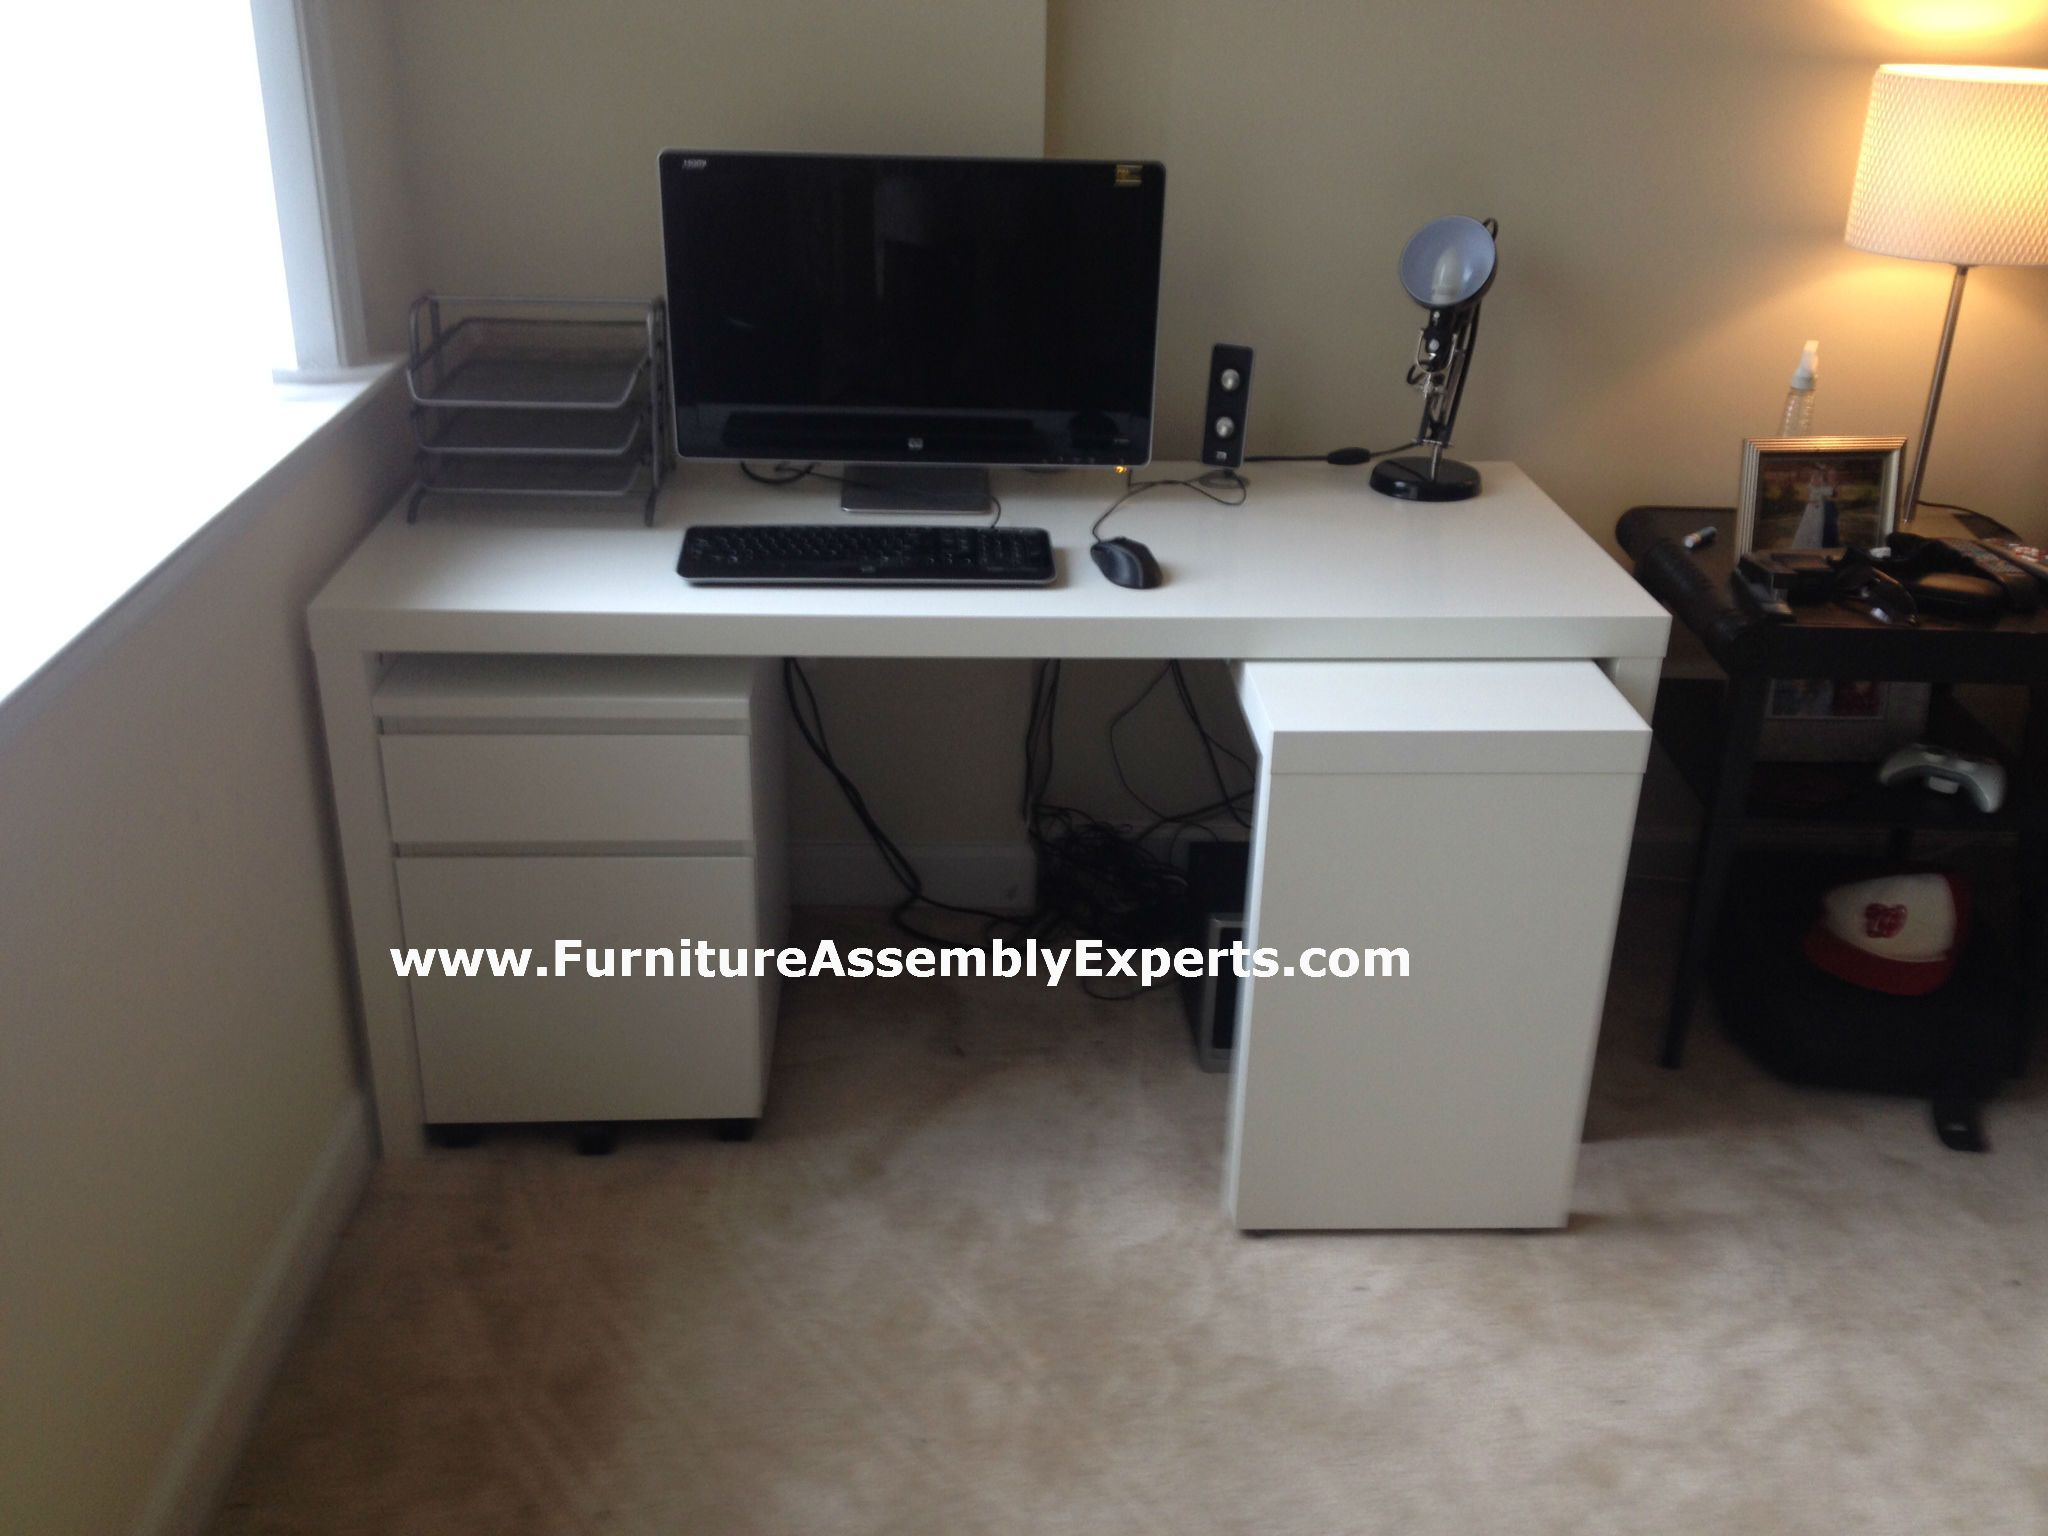 Ikea Malm Desk With Galant File Cabinet Assembled In Philadephia Pa By Furniture Assembly Experts Llc Ikea Malm Desk Ikea Furniture Assembly Ikea Malm